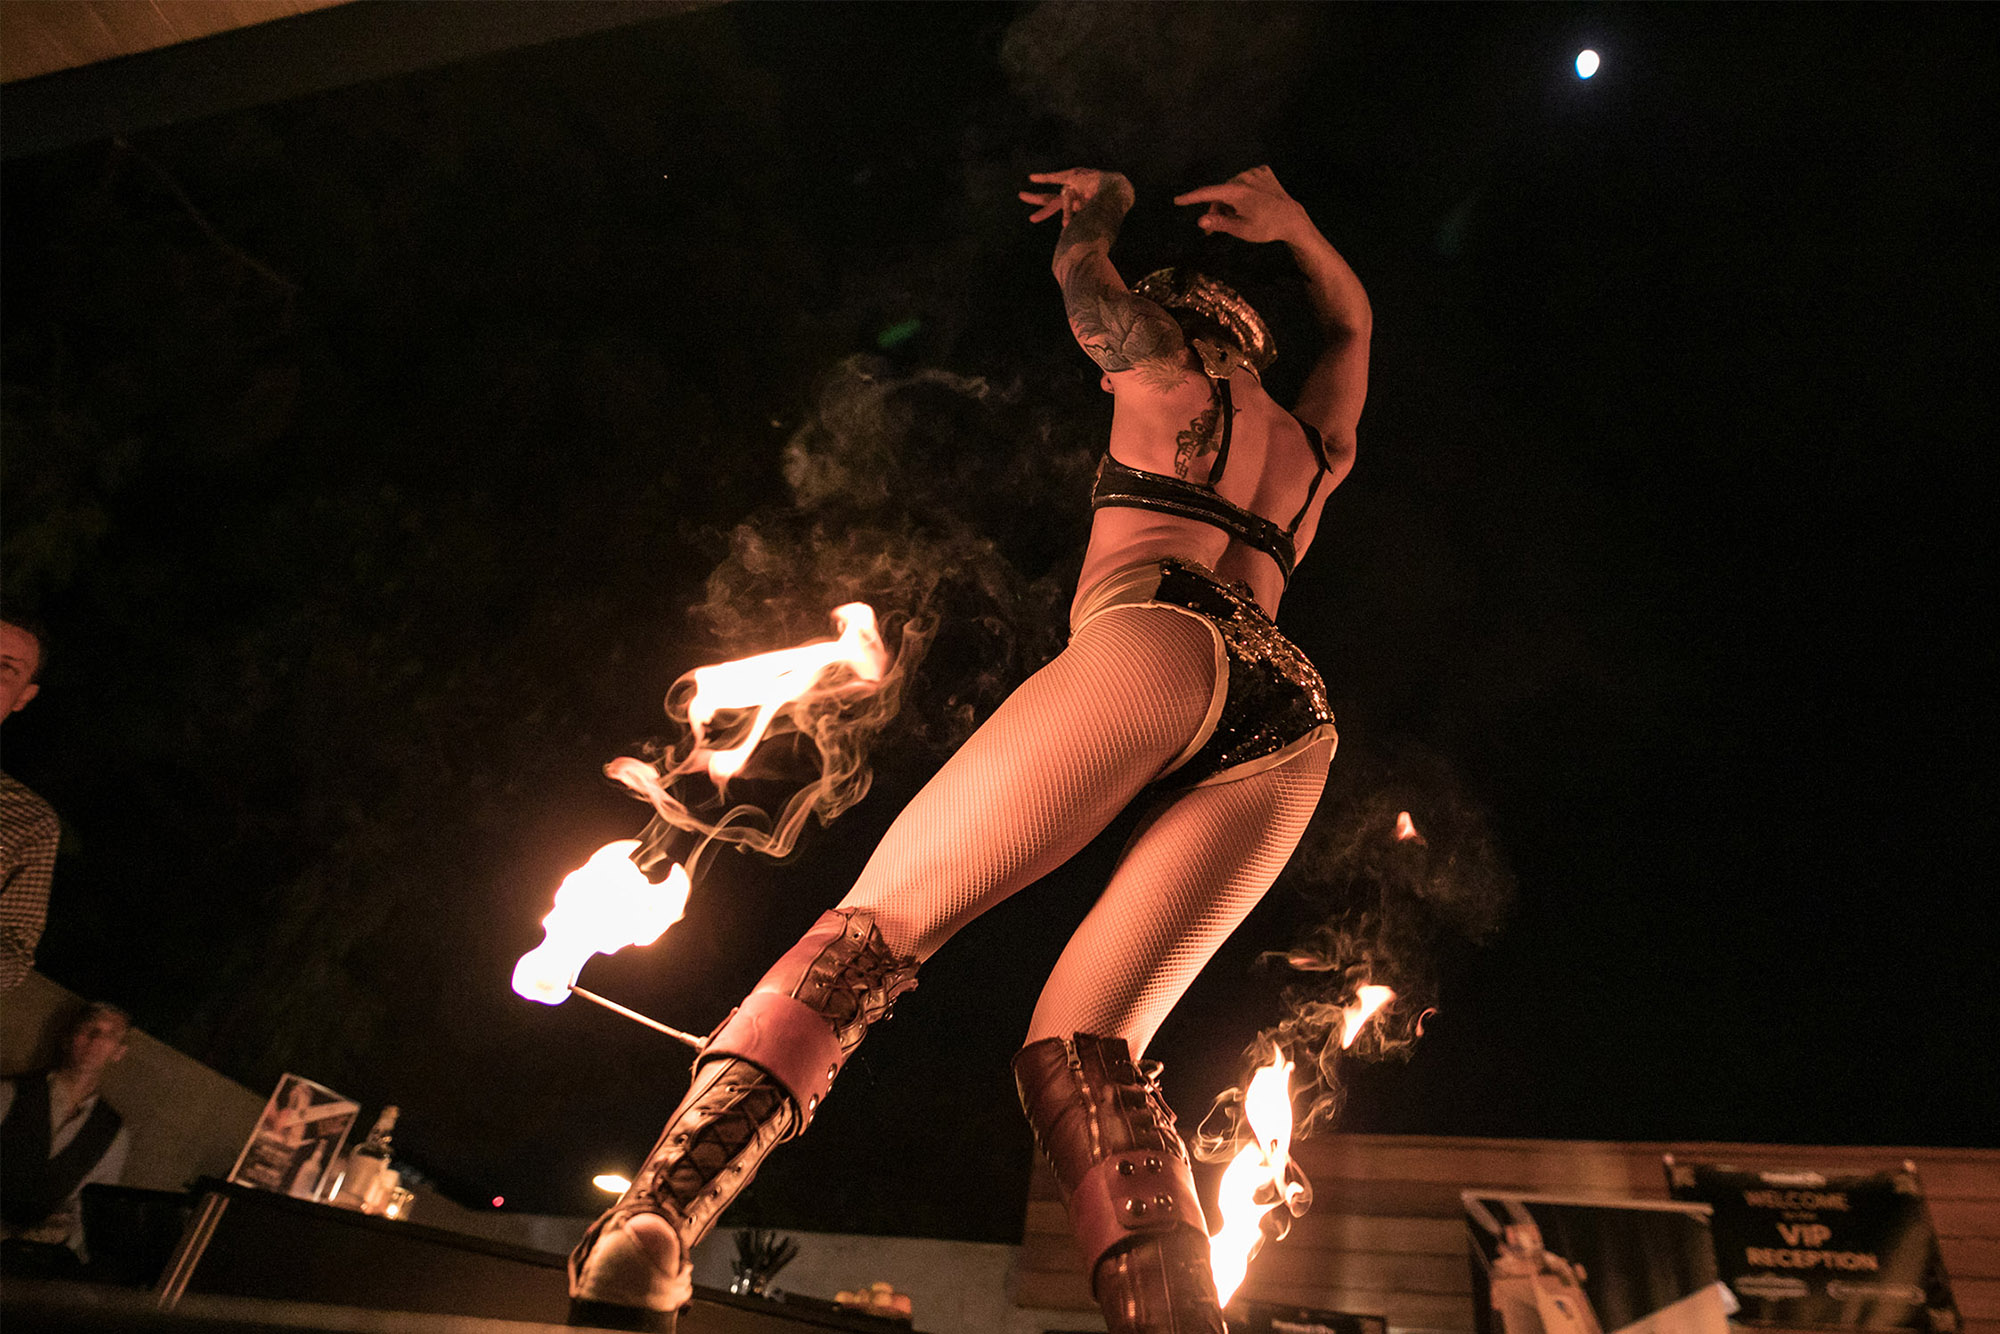 another photo of fire dancers